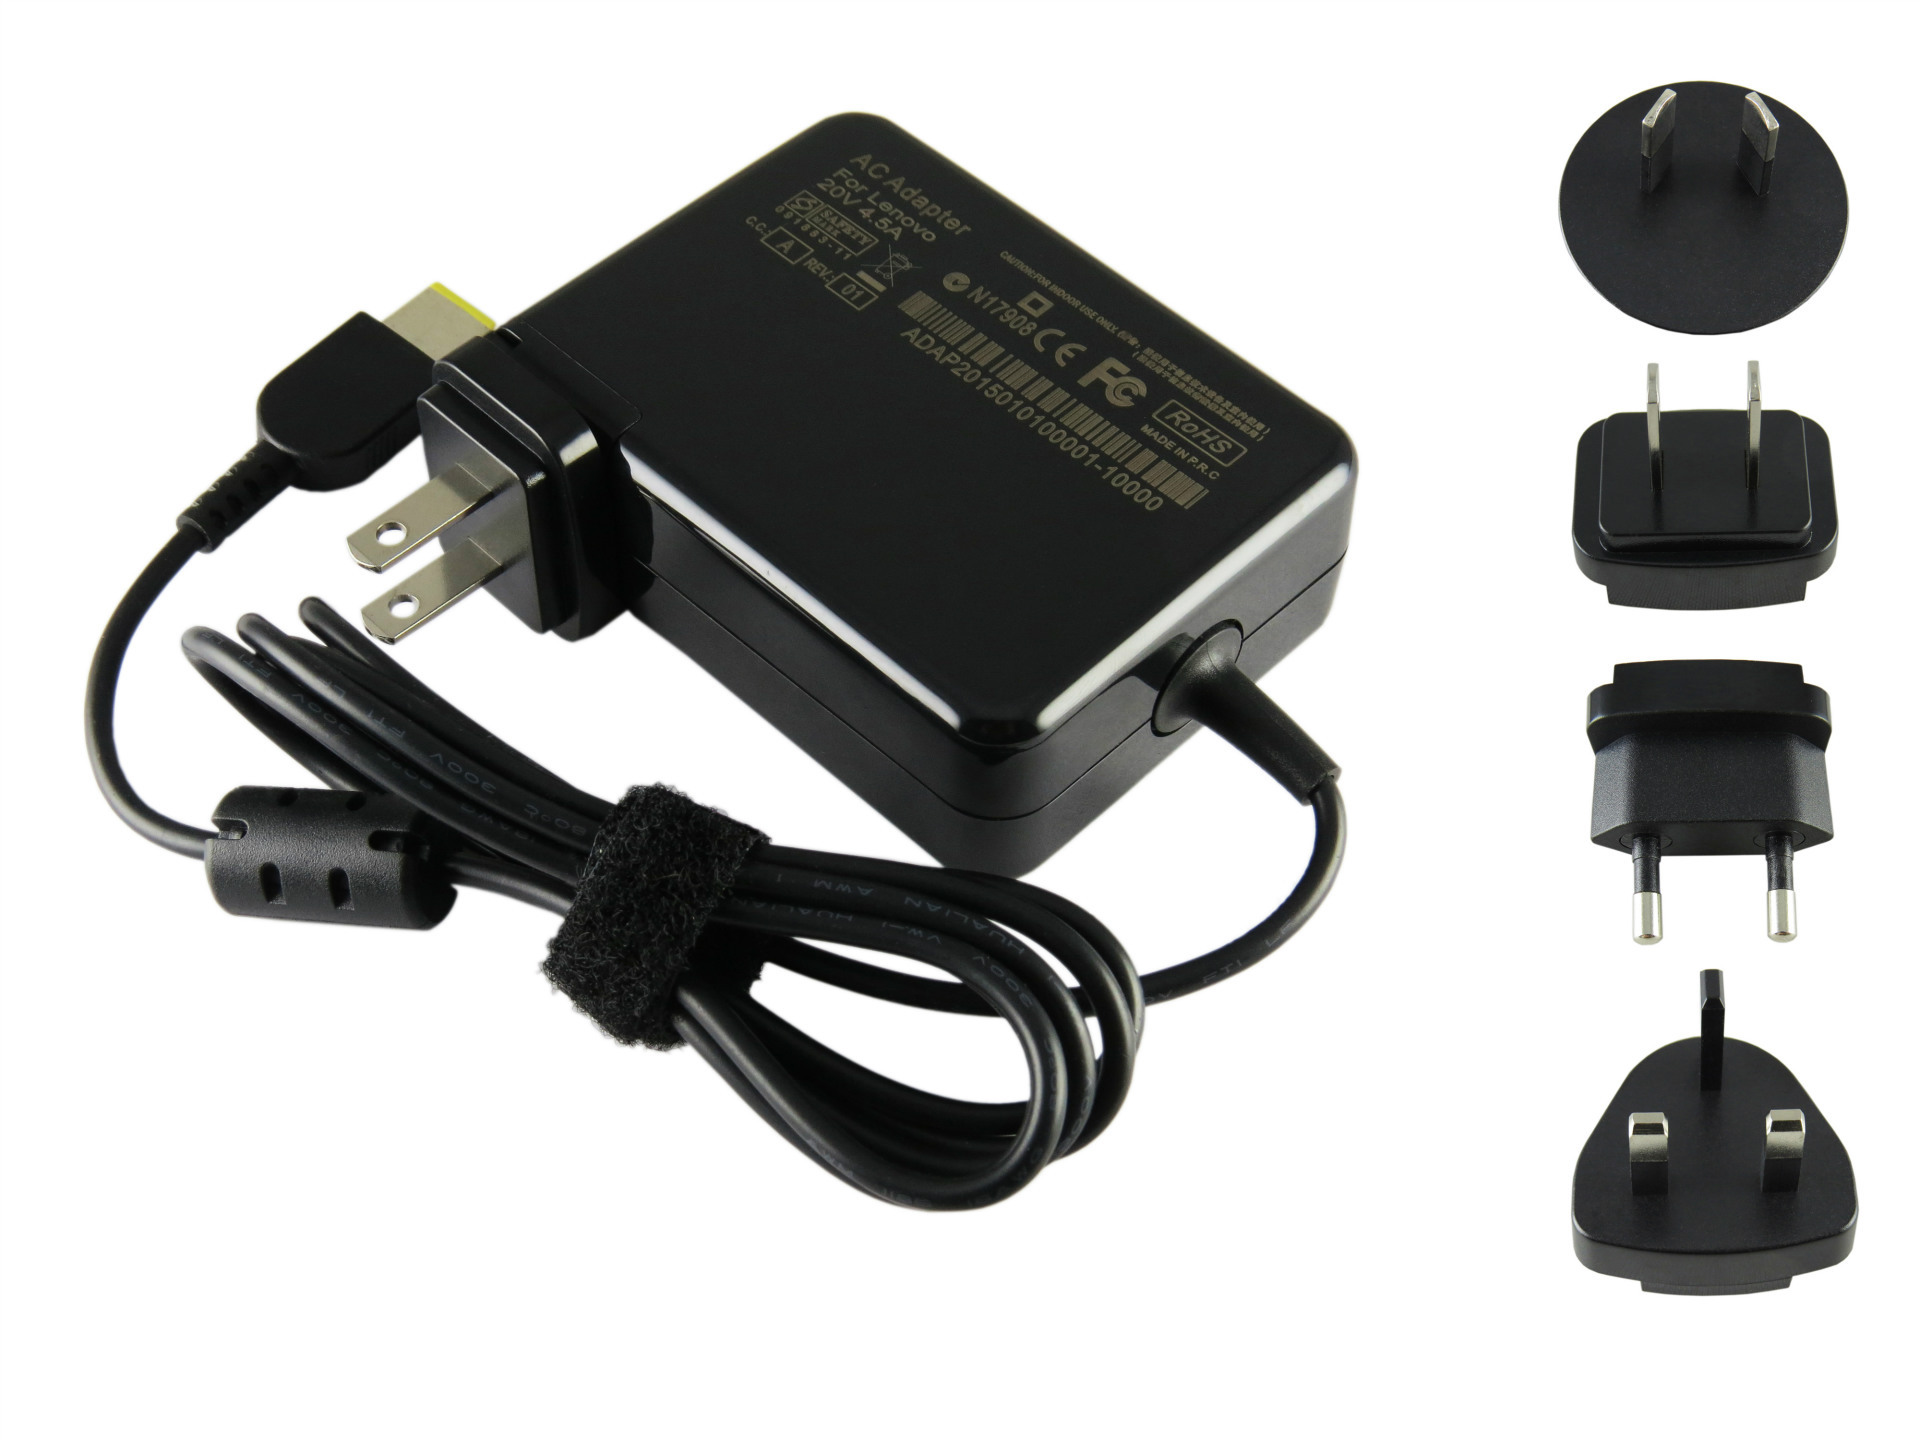 20 V 4.5A 90 W Ac Laptop Power Adapter Oplader Voor Lenovo X1 Carbon - Notebook accessoires - Foto 1